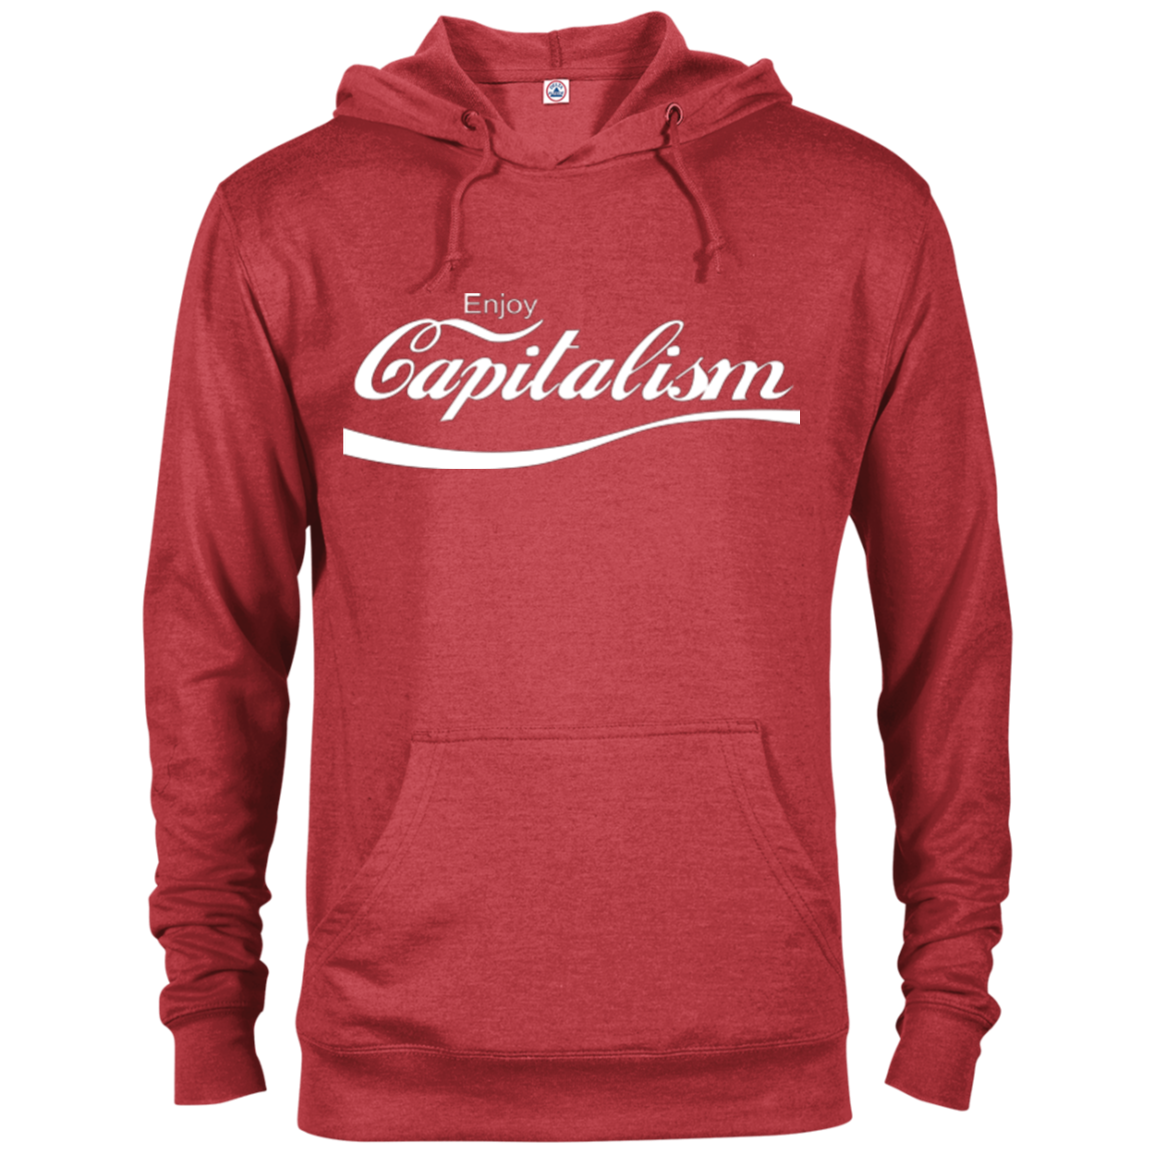 Enjoy Capitalism: French Terry Hoodie